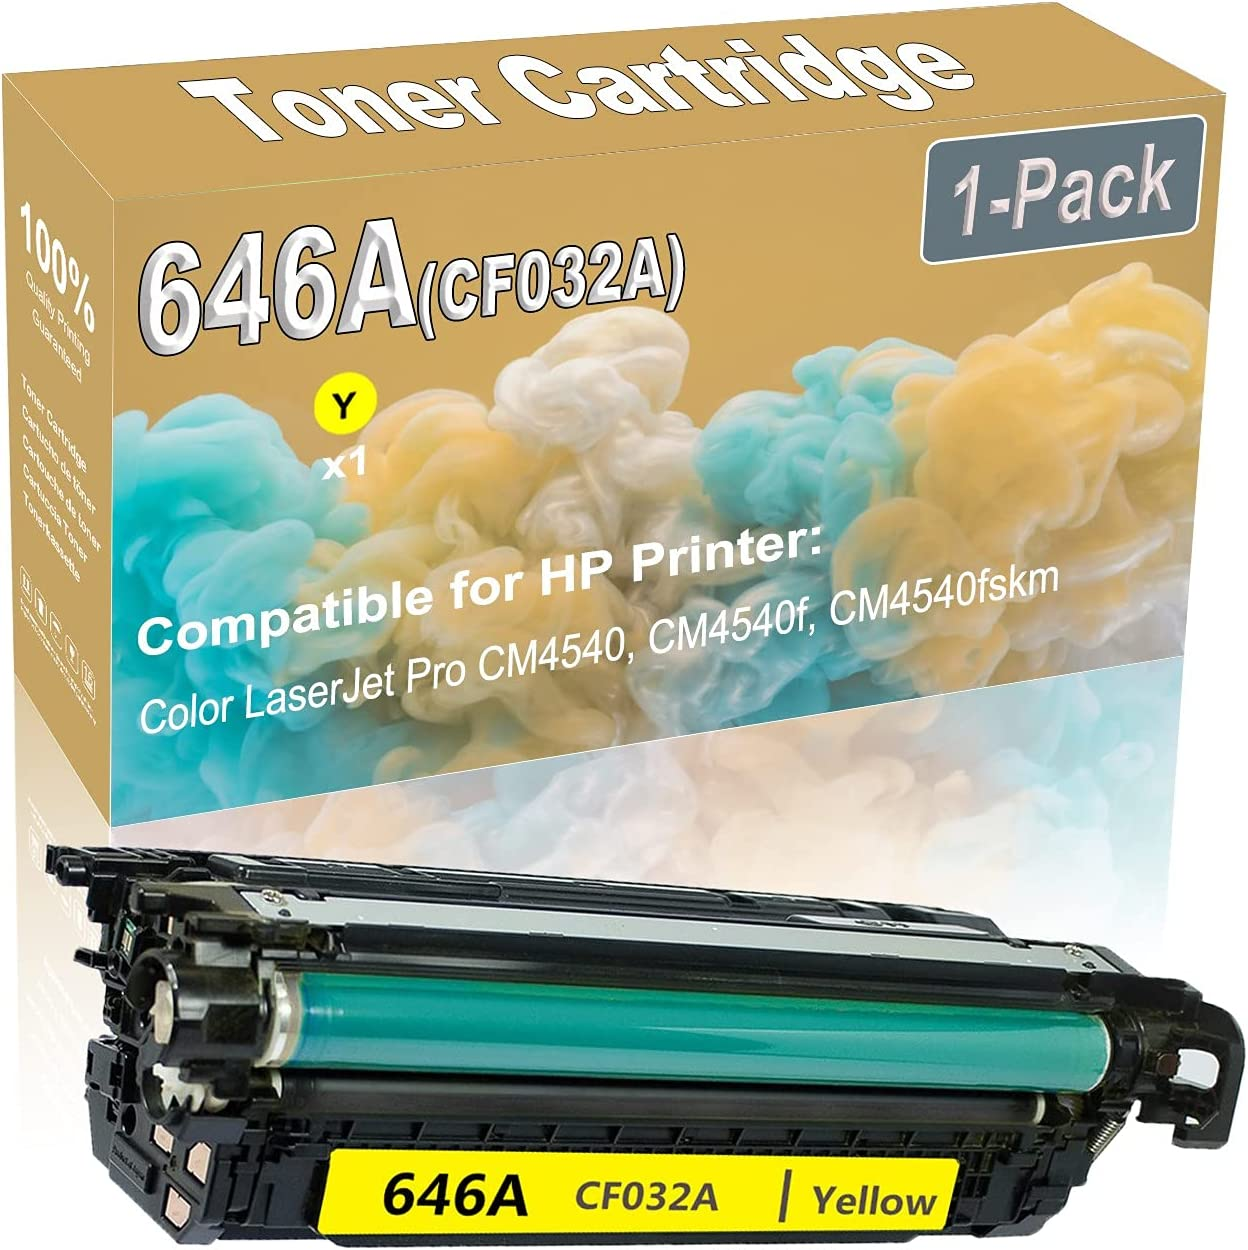 1-Pack (Yellow) Compatible High Yield 646A (CF032A) Printer Toner Cartridge use for HP CM4540 CM4540f Printers